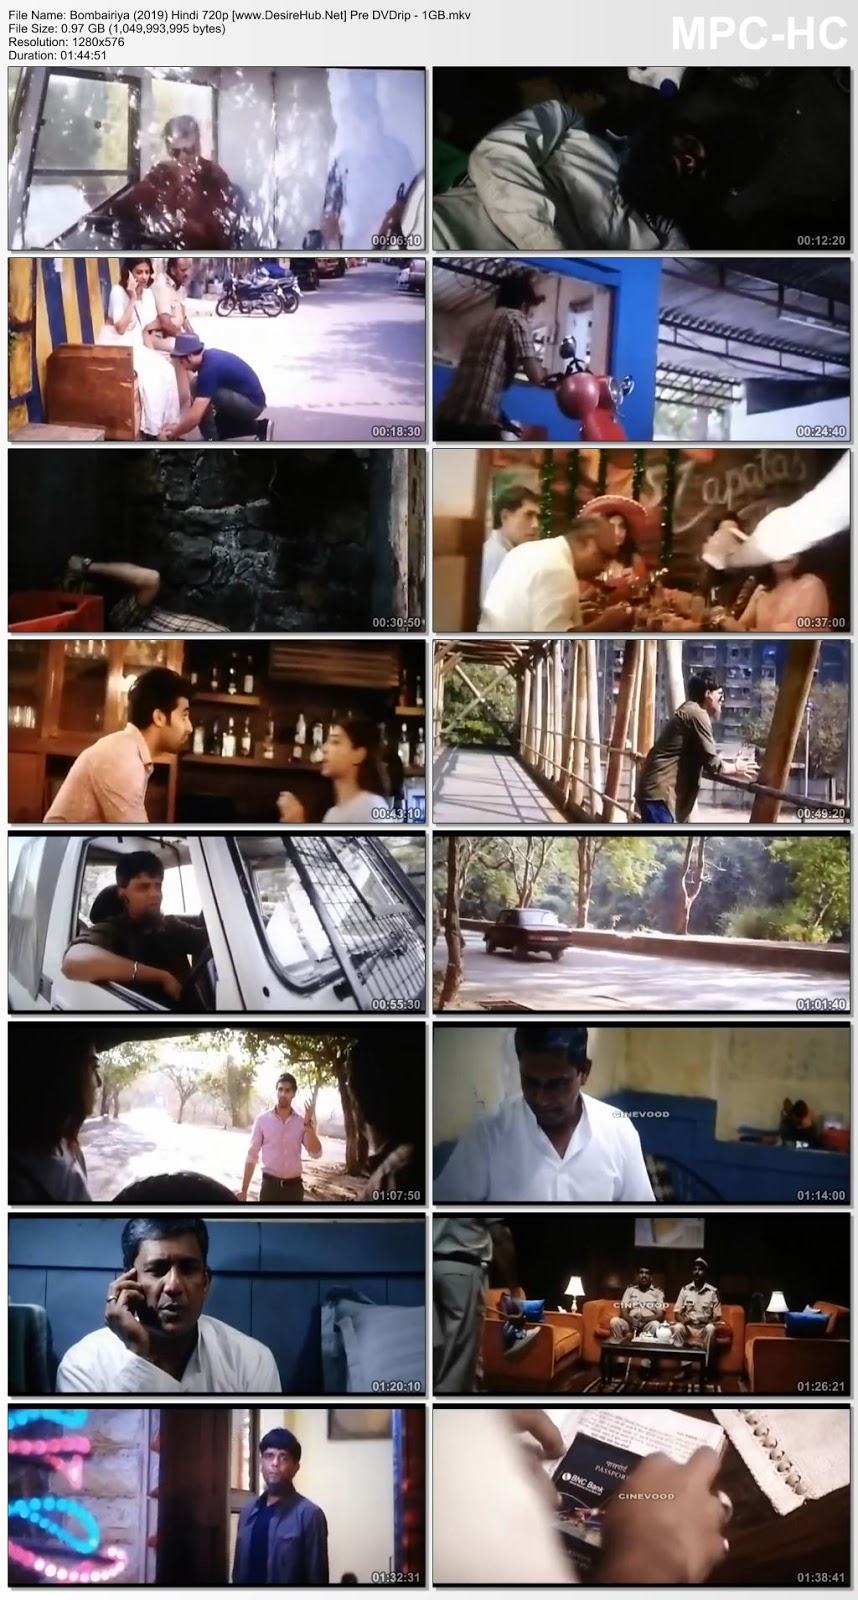 Bombairiya (2019) Hindi 720p Pre-DVDrip – 1GB Desirehub